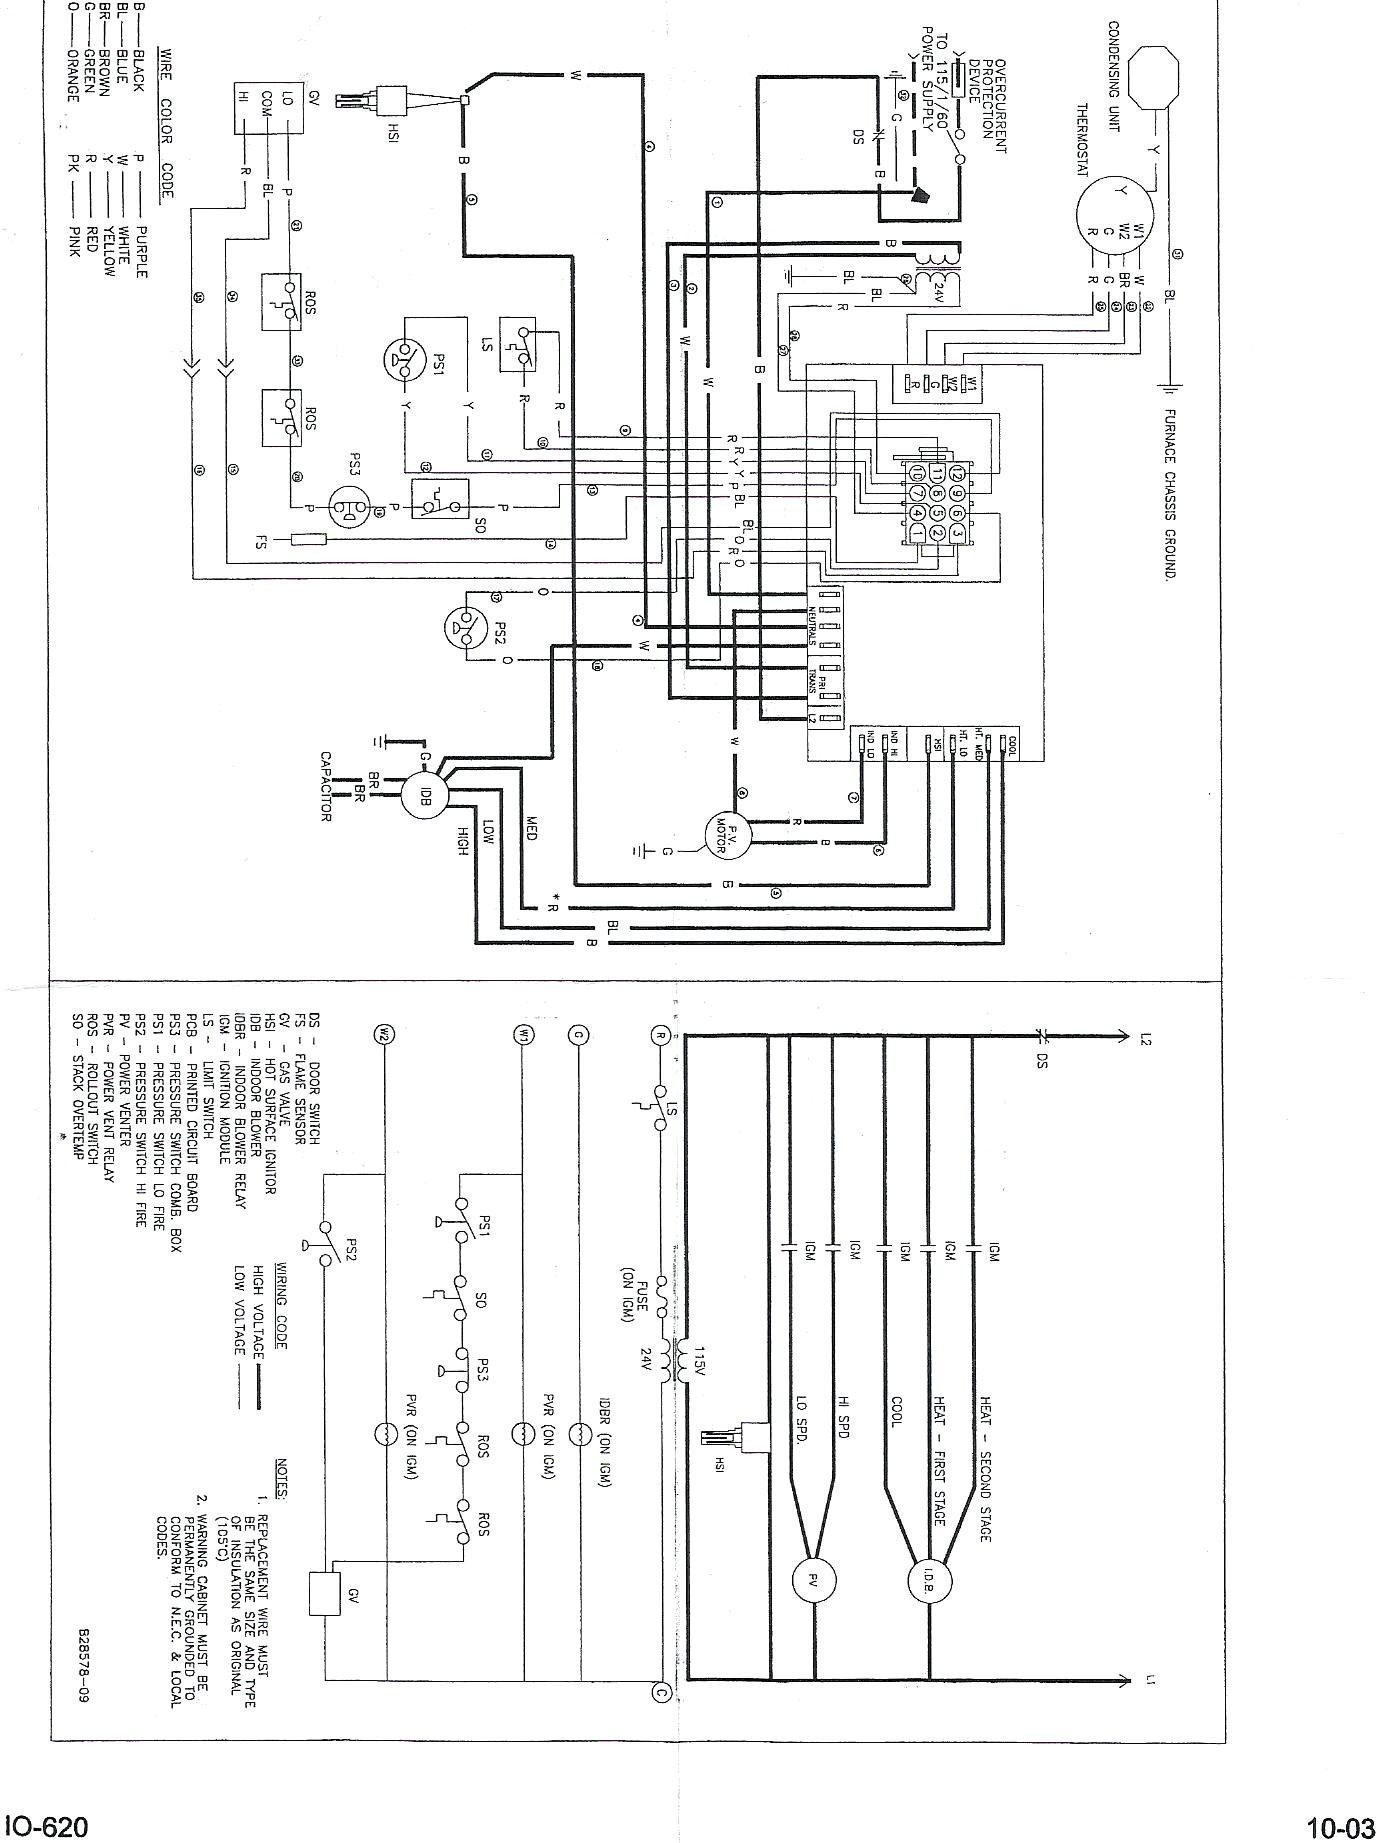 hight resolution of newair wiring diagram index listing of wiring diagrams electric garage heaters home depot newair g73 wiring diagram